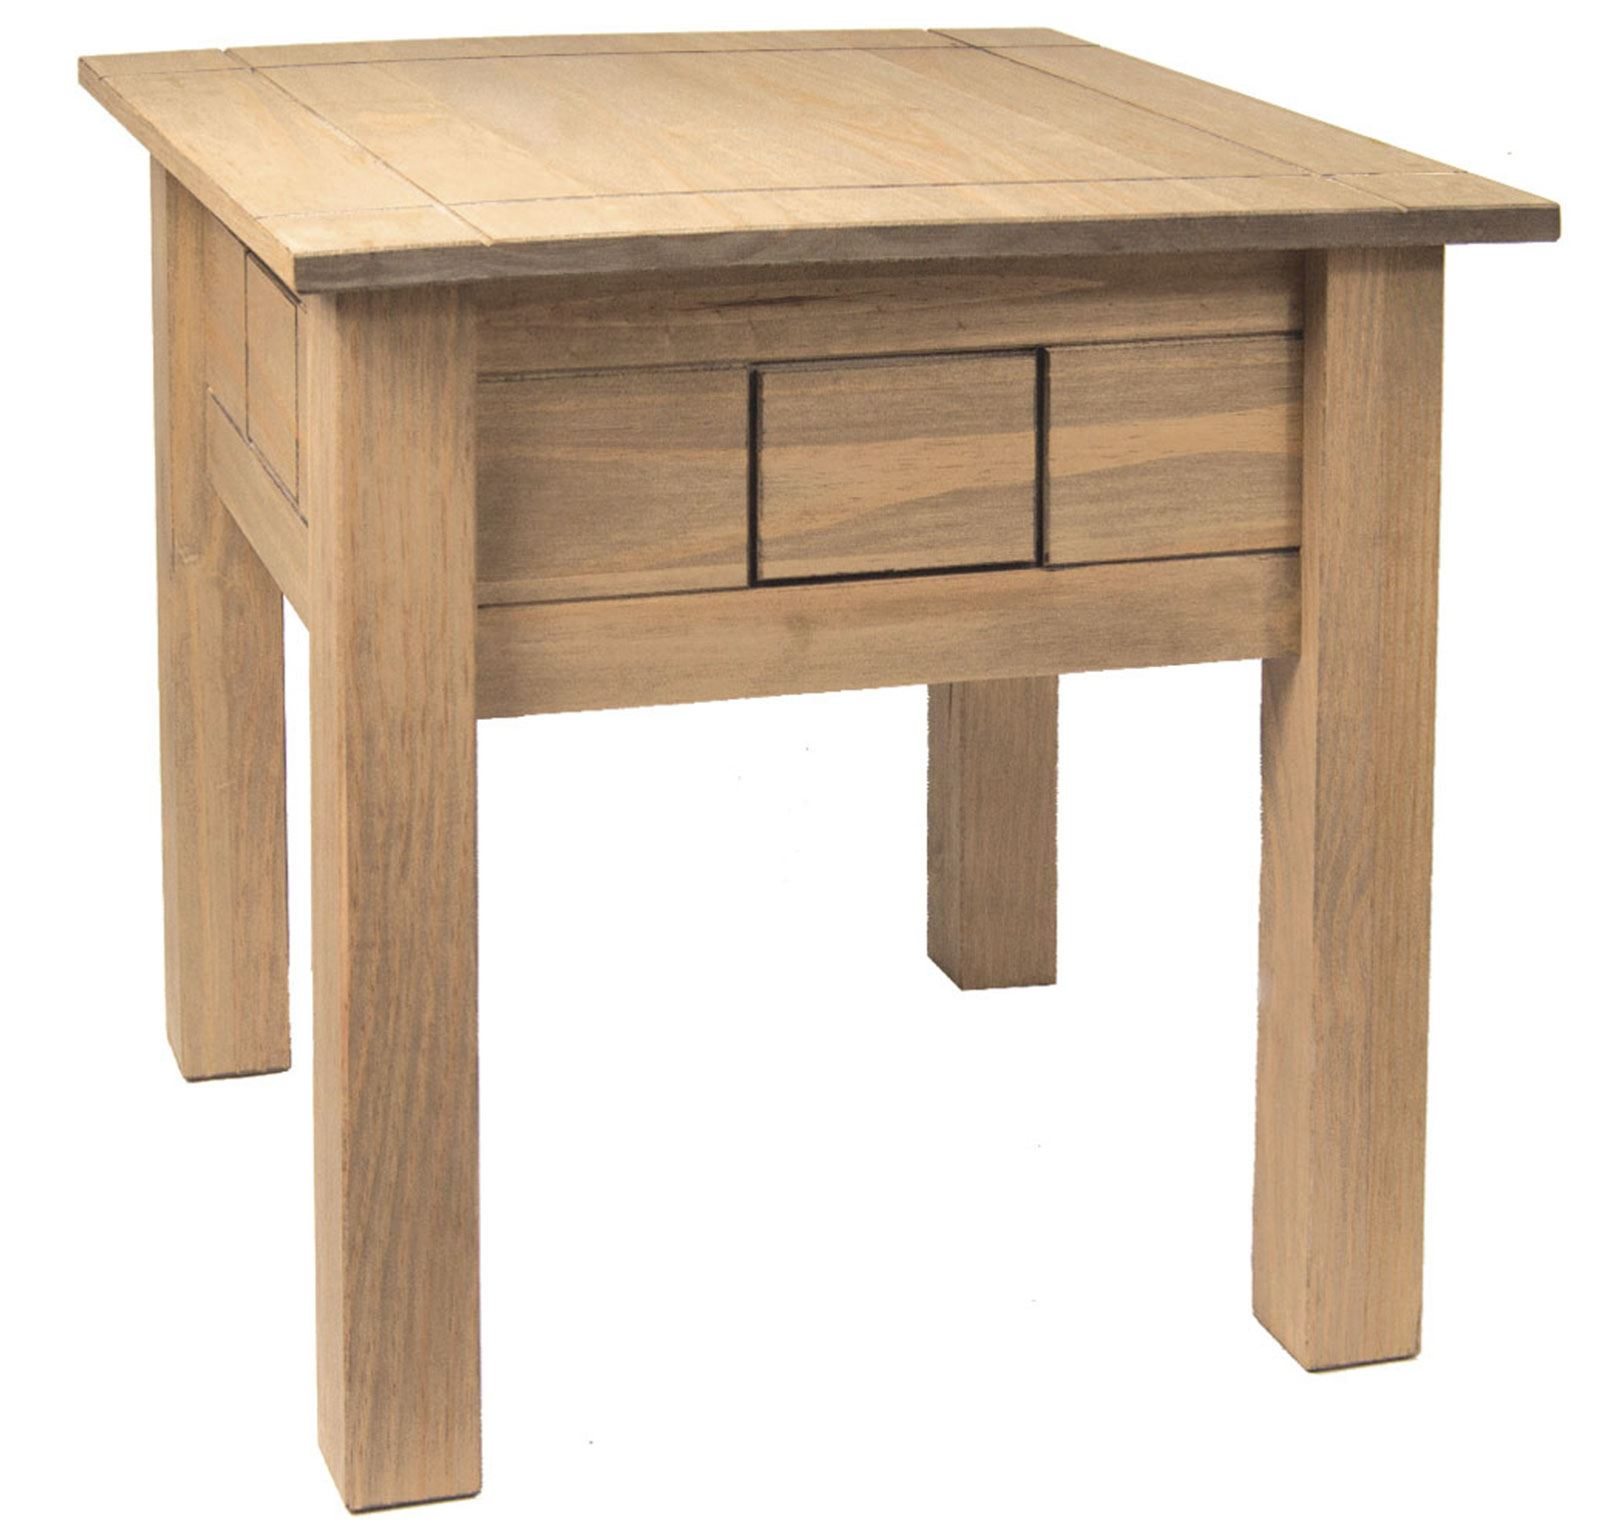 Panama Lamp Table Nest Of 2 Tables 1 Drawer Coffee Table In Pine Natural Oak Ebay